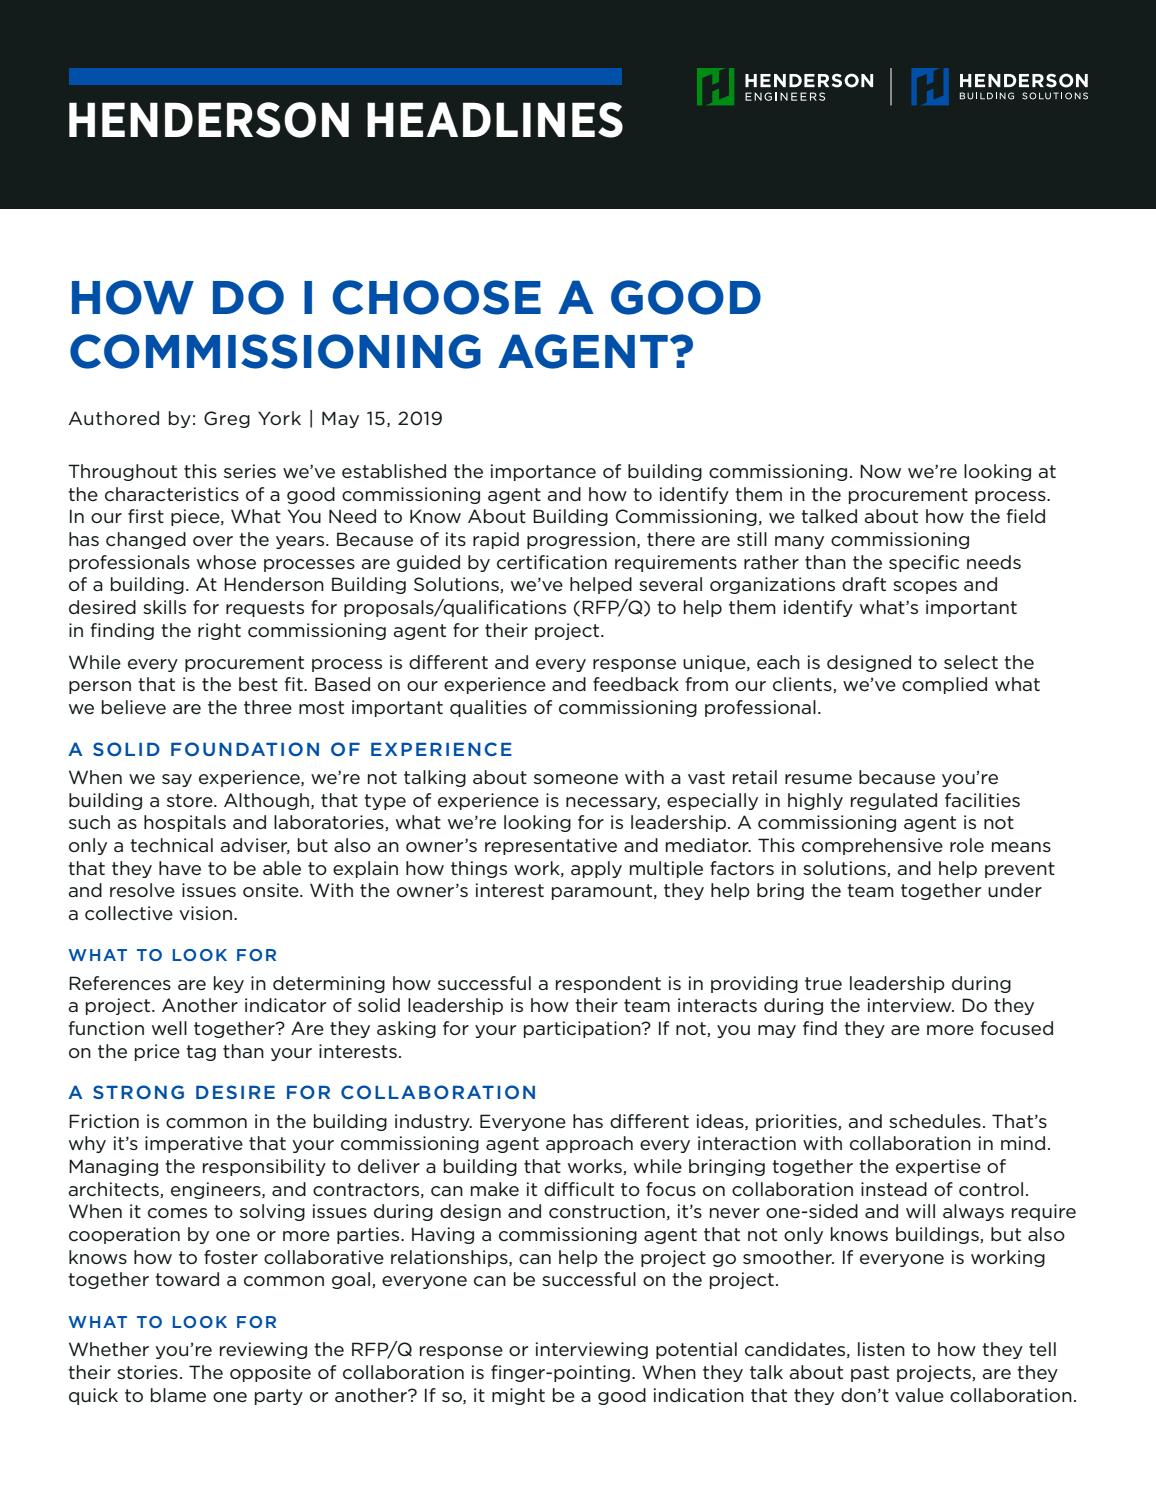 How Do I Choose A Good Commissioning Agent? by